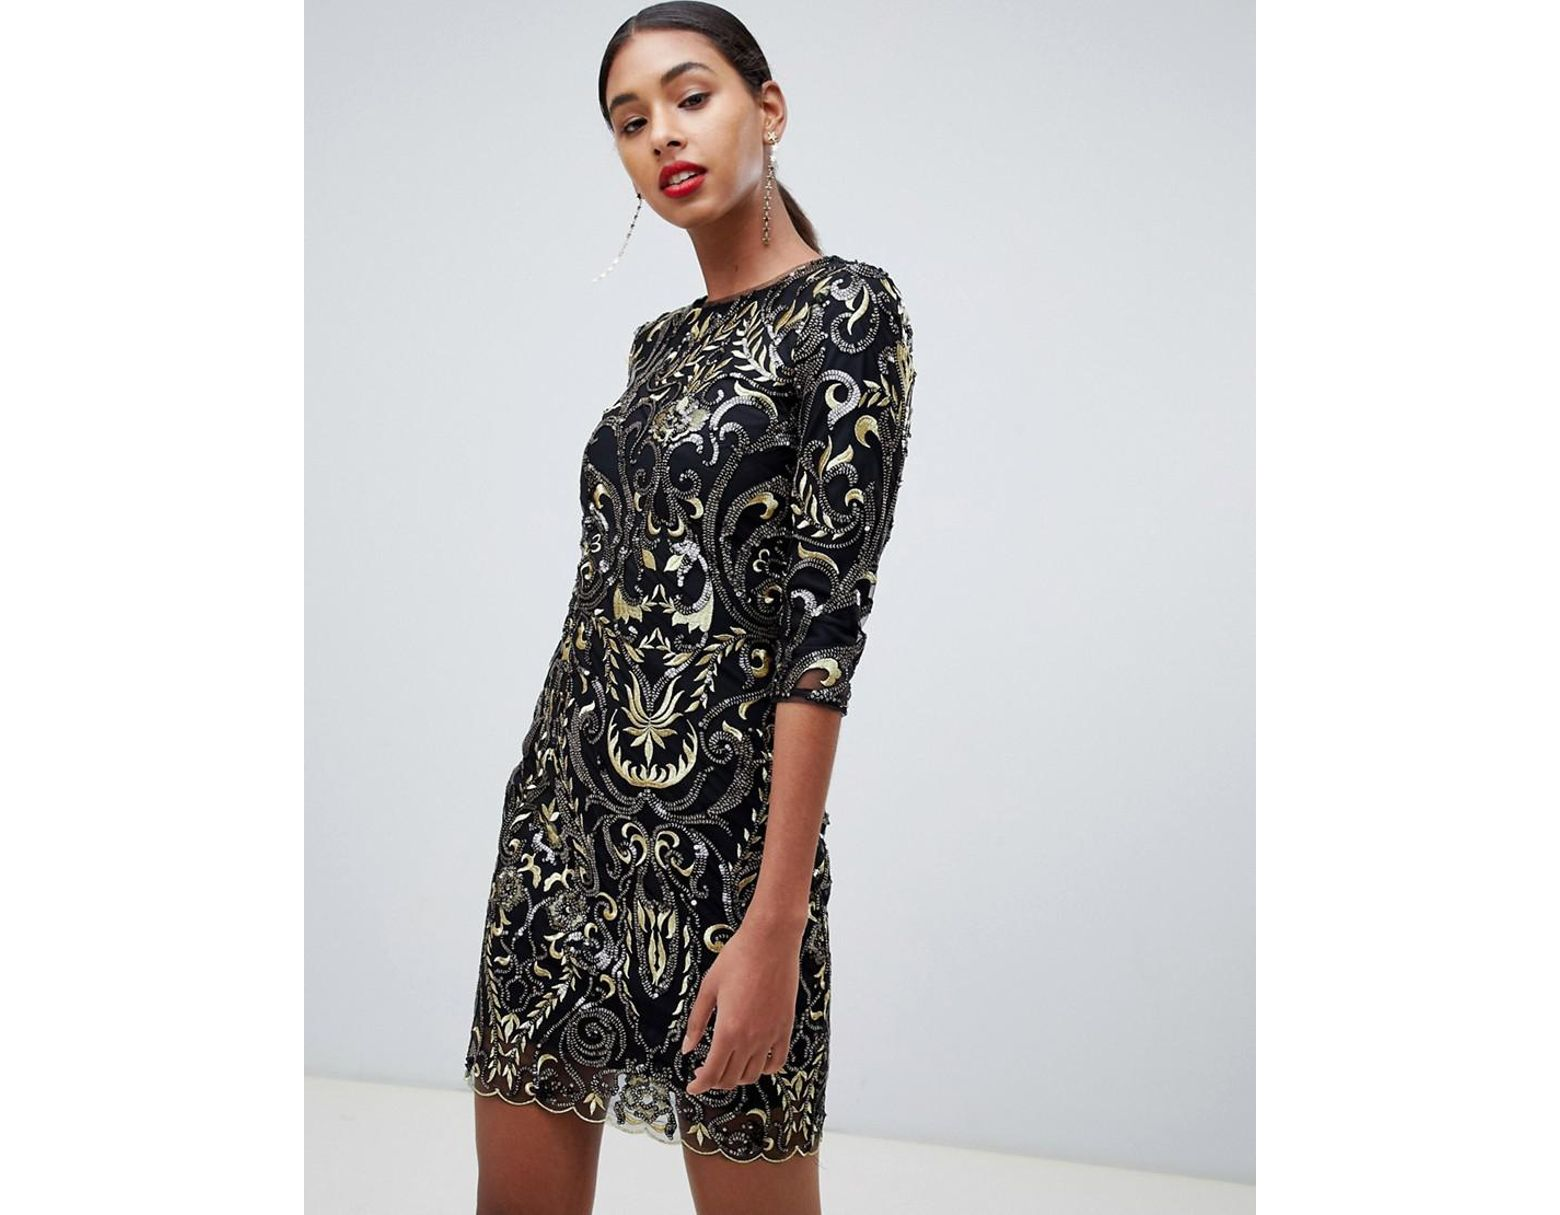 f11a227255ed TFNC London Patterned Sequin Mini Bodycon Dress With Scallop Open Back In  Black in Black - Lyst